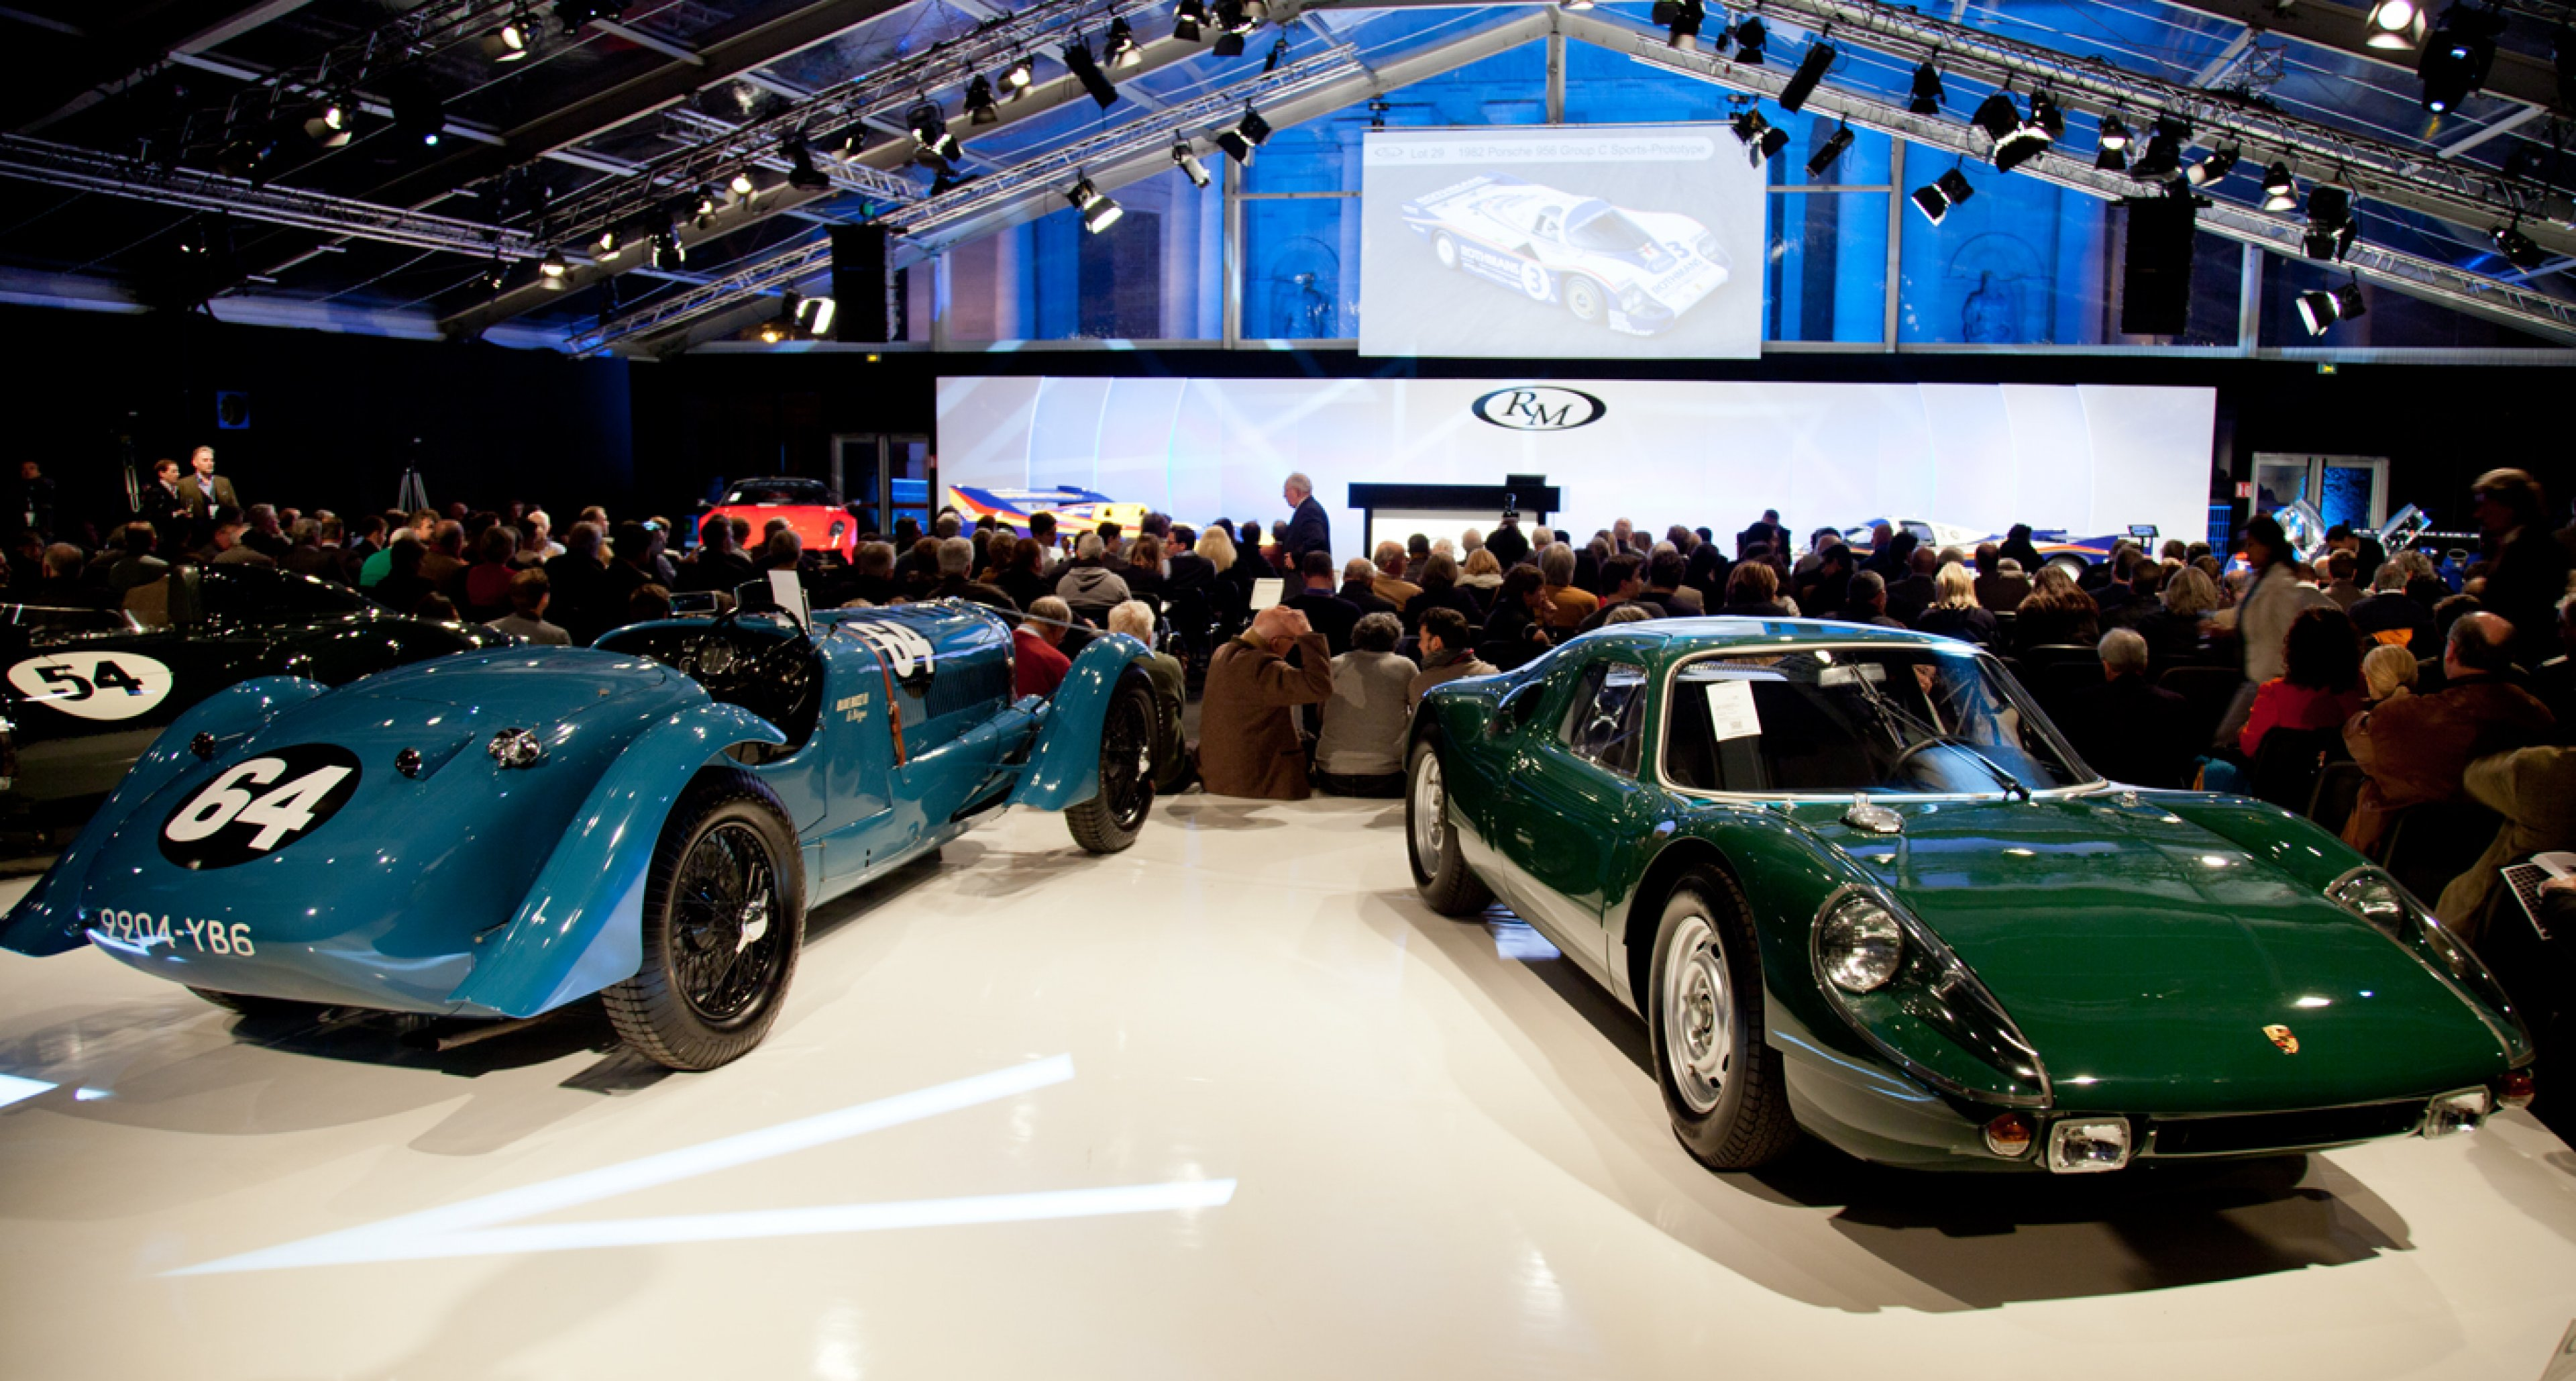 Delahaye 135 S (sold for €1,008,000) and Porsche 904 Carrera GTS (sold for €1,288,000) at RM Auctions first Retromobile auction in Paris.